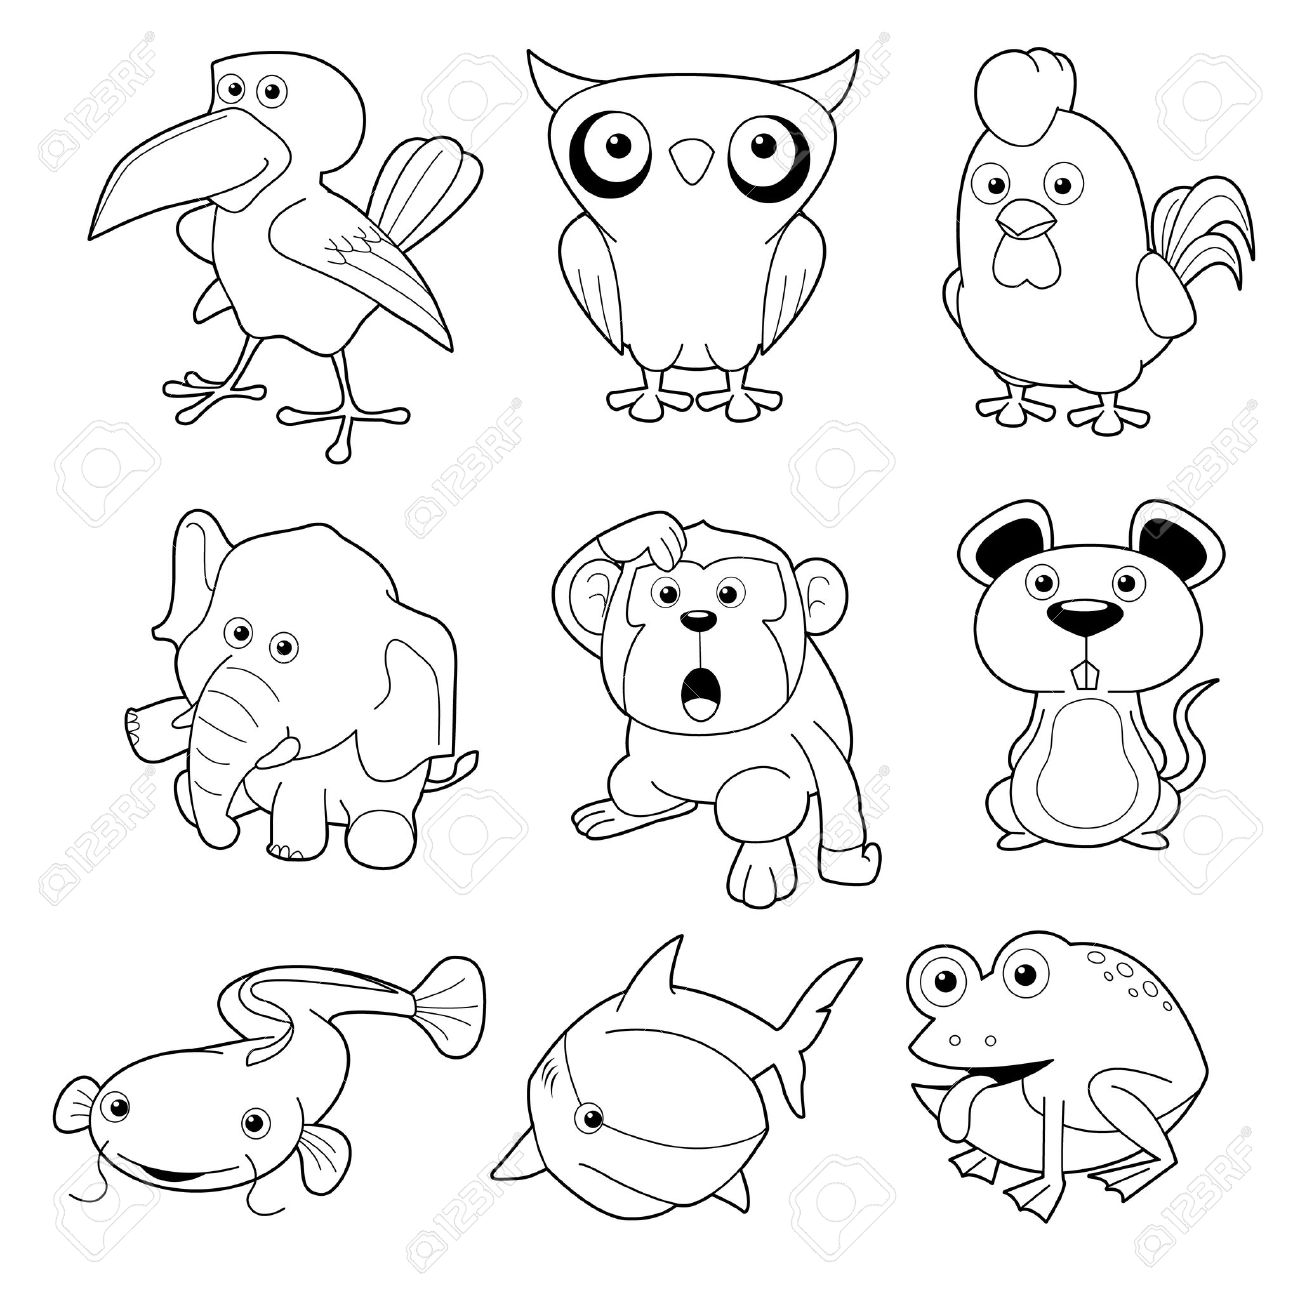 Drawing Outlines Of Animals At Getdrawings